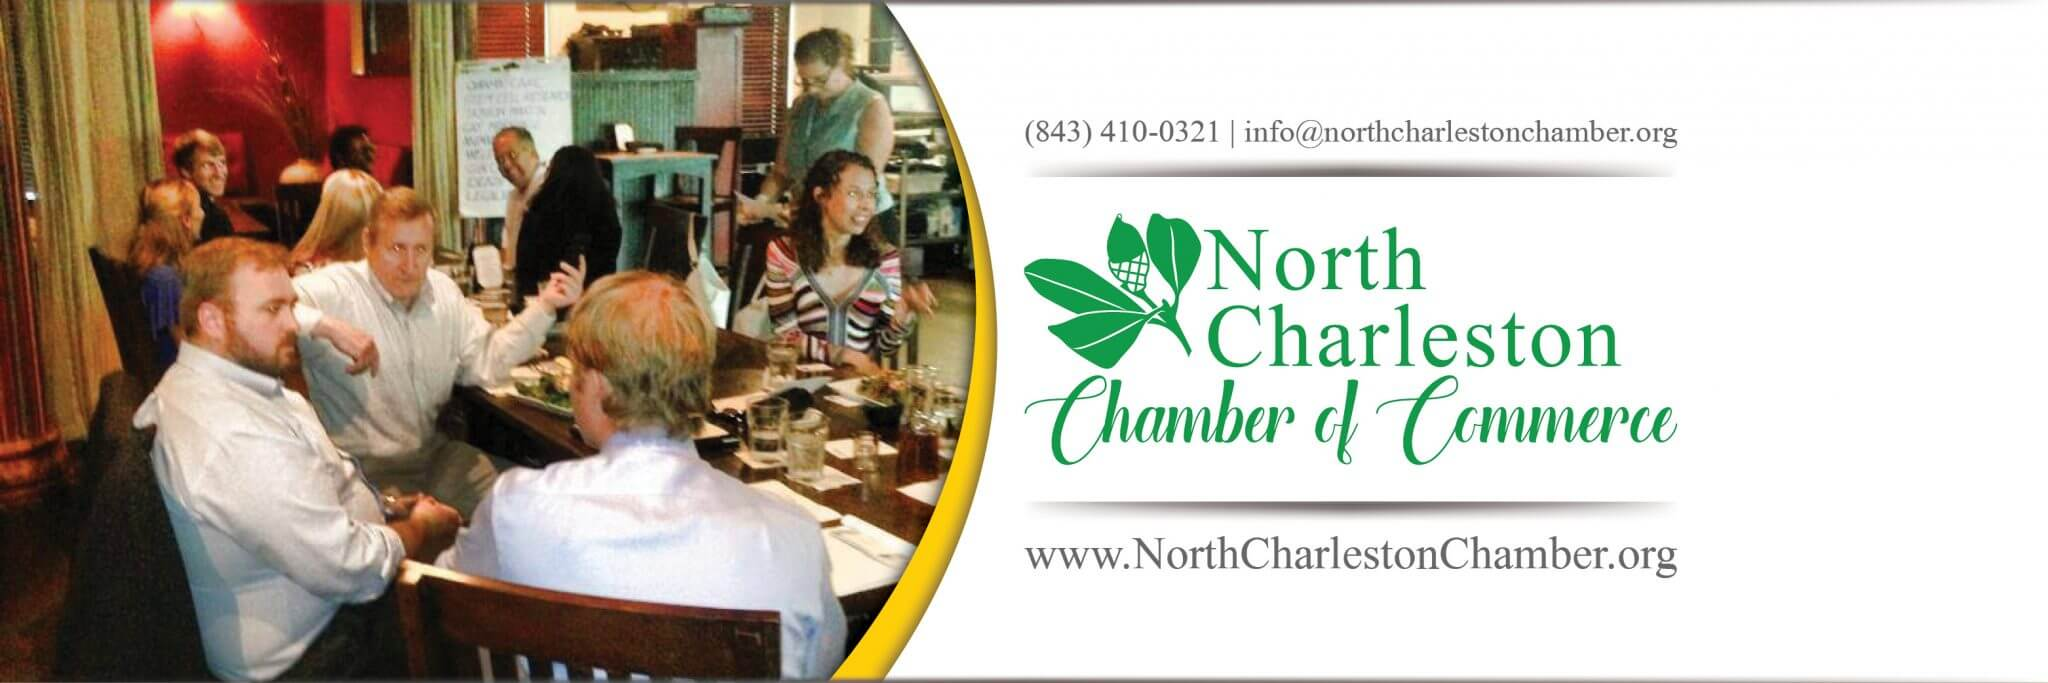 North Charleston Chamber of Commerce Small Business